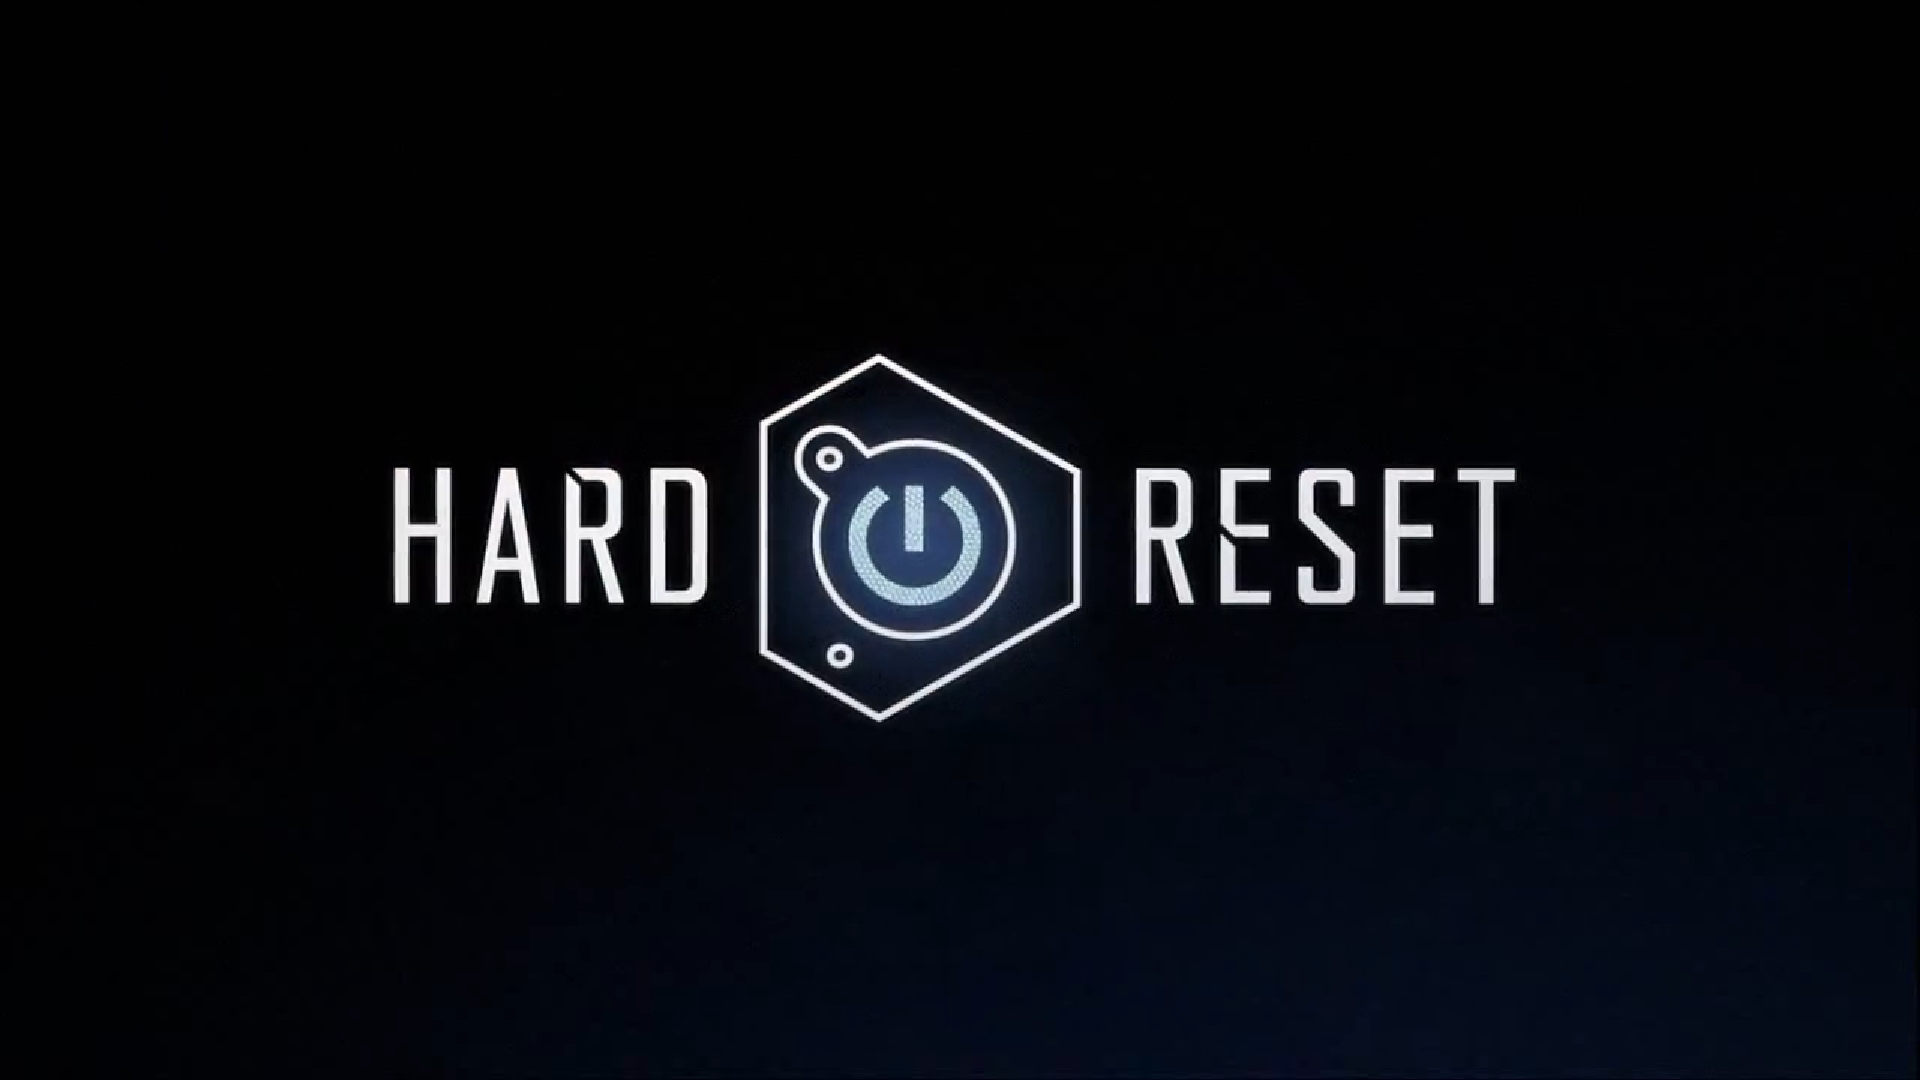 Windows 7 theme with hard reset wallpapers for How hard is it to remove wallpaper